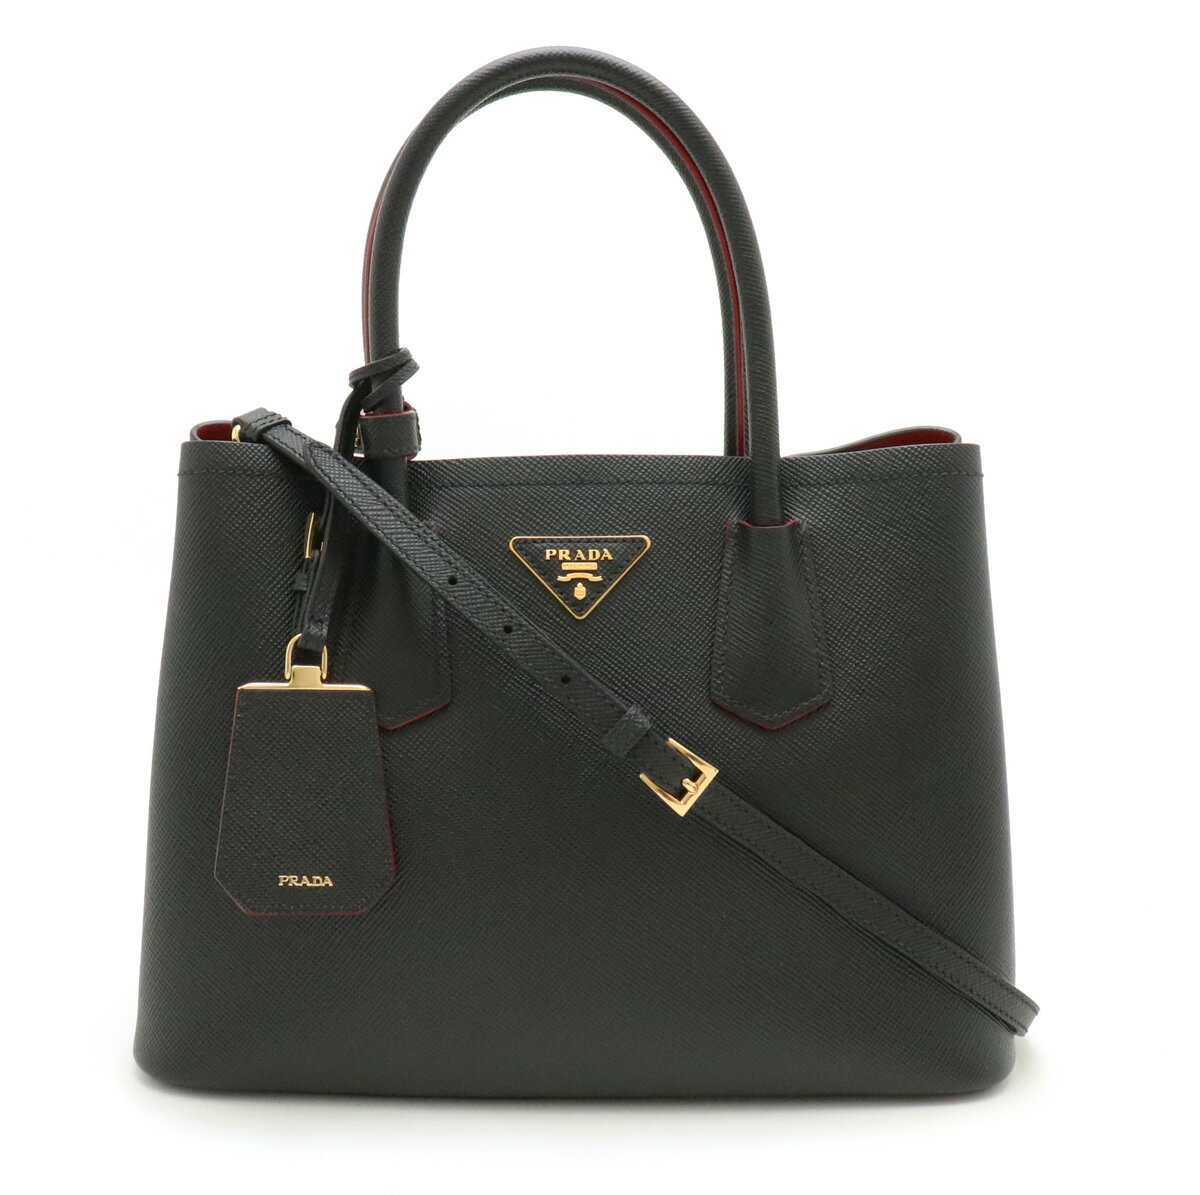 [Bag] PRADA Prada handbag tote bag 2WAY shoulder bag embossed leather NERO black FUOCO red domestic boutique purchase 1BG887 [used]